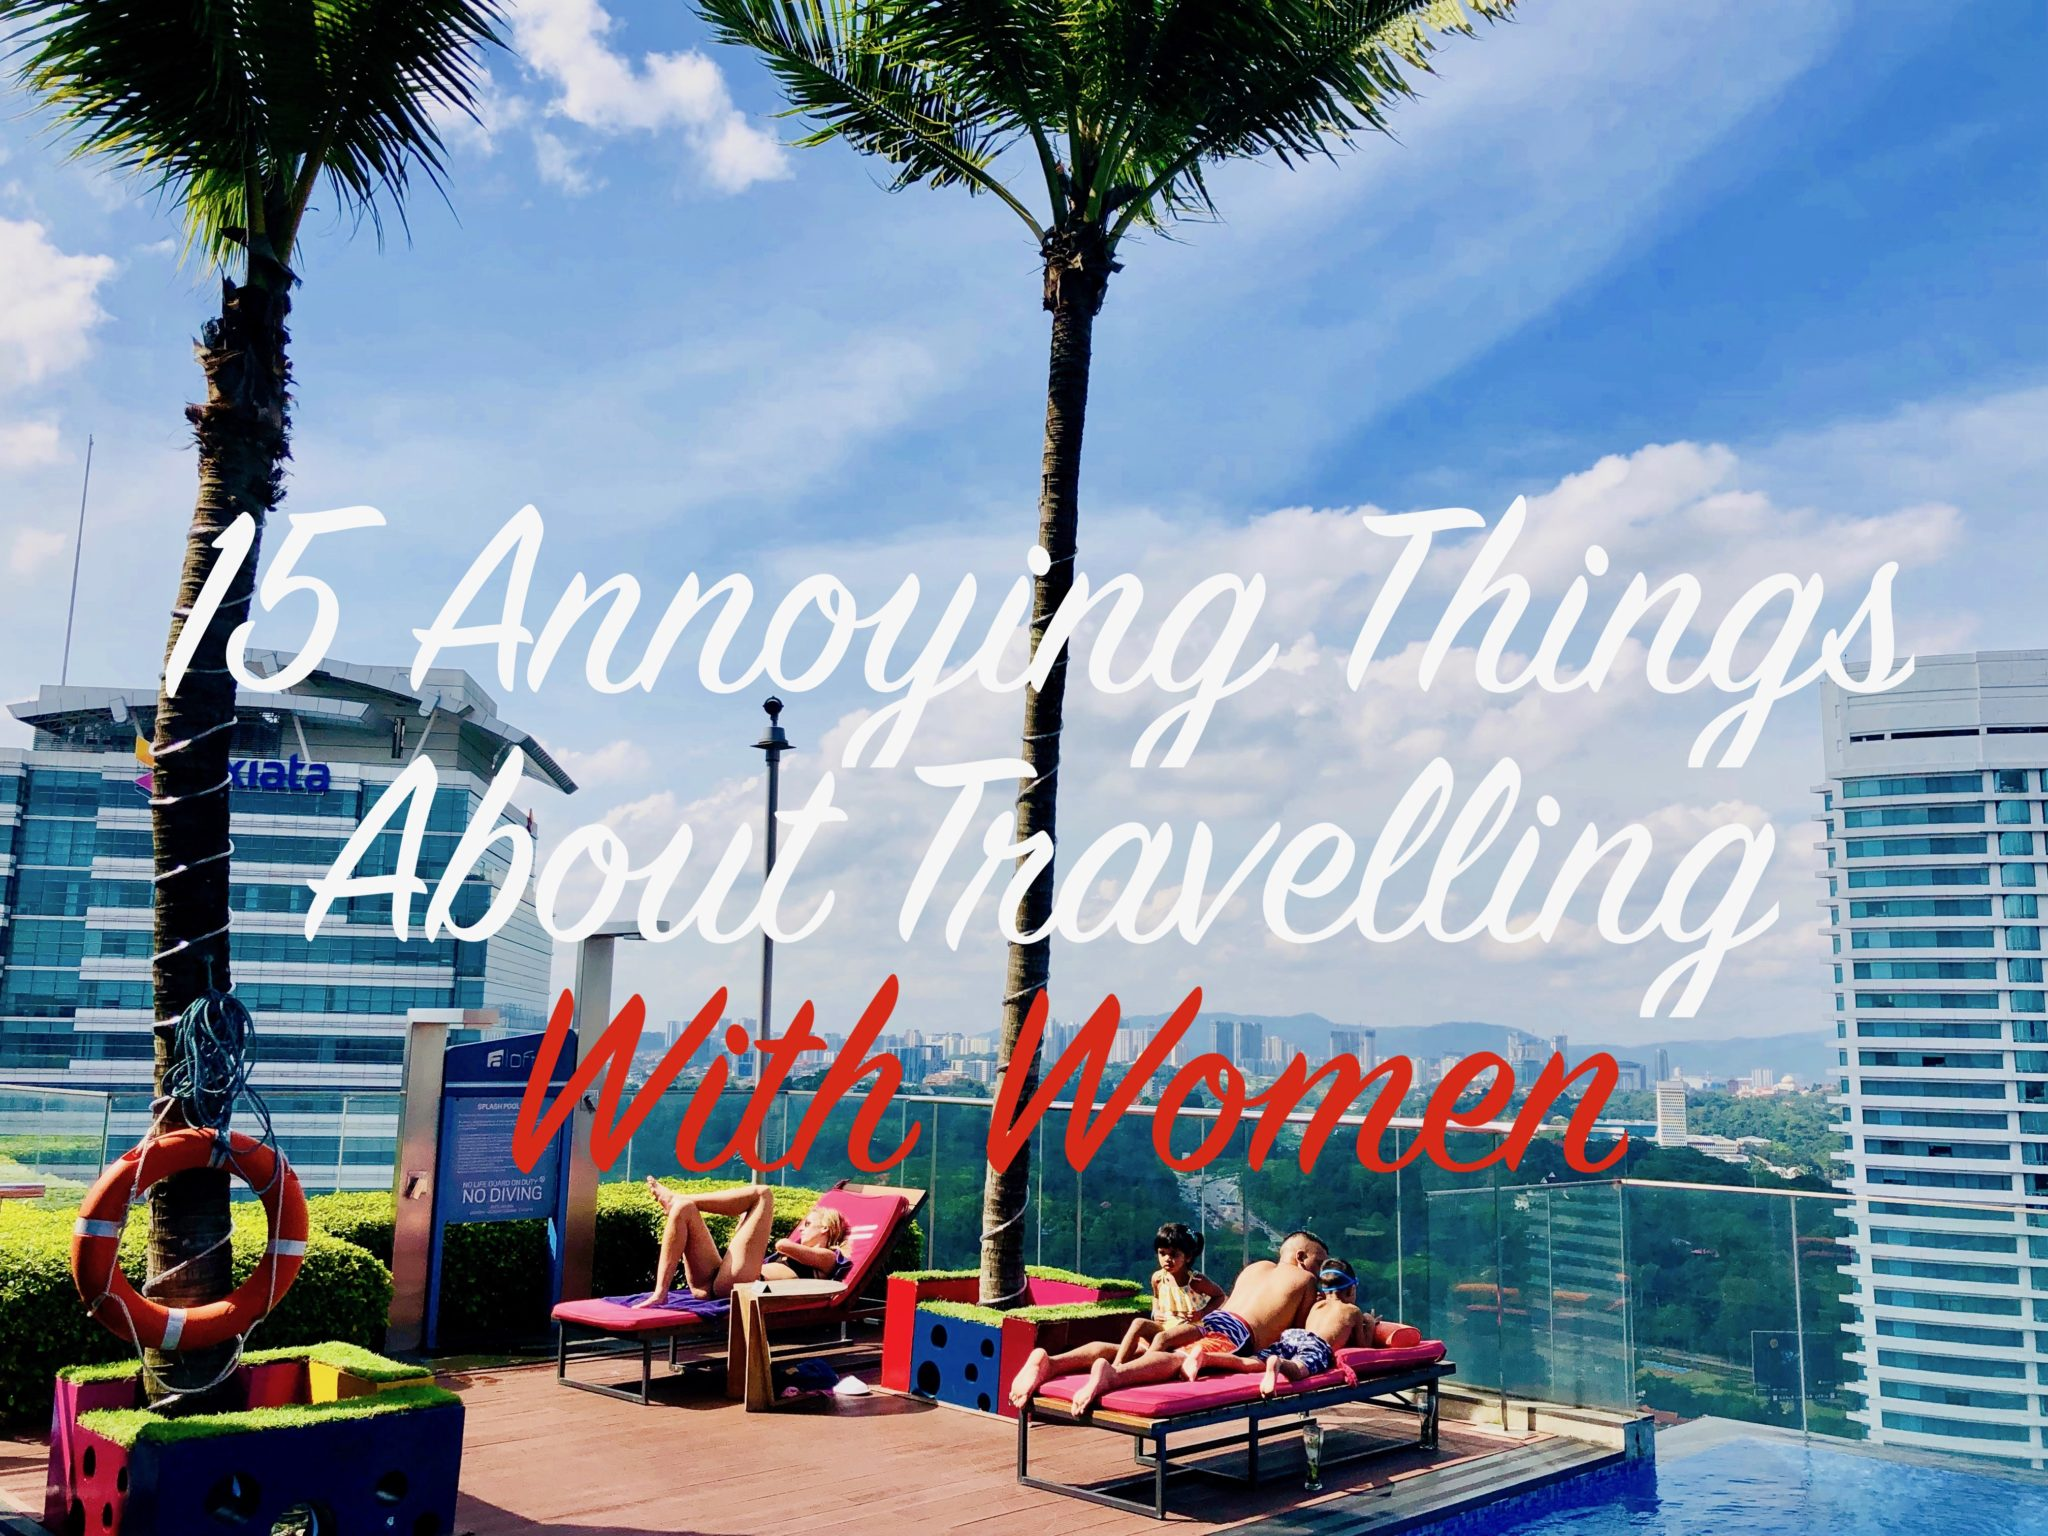 15 Annoying things about travelling with women